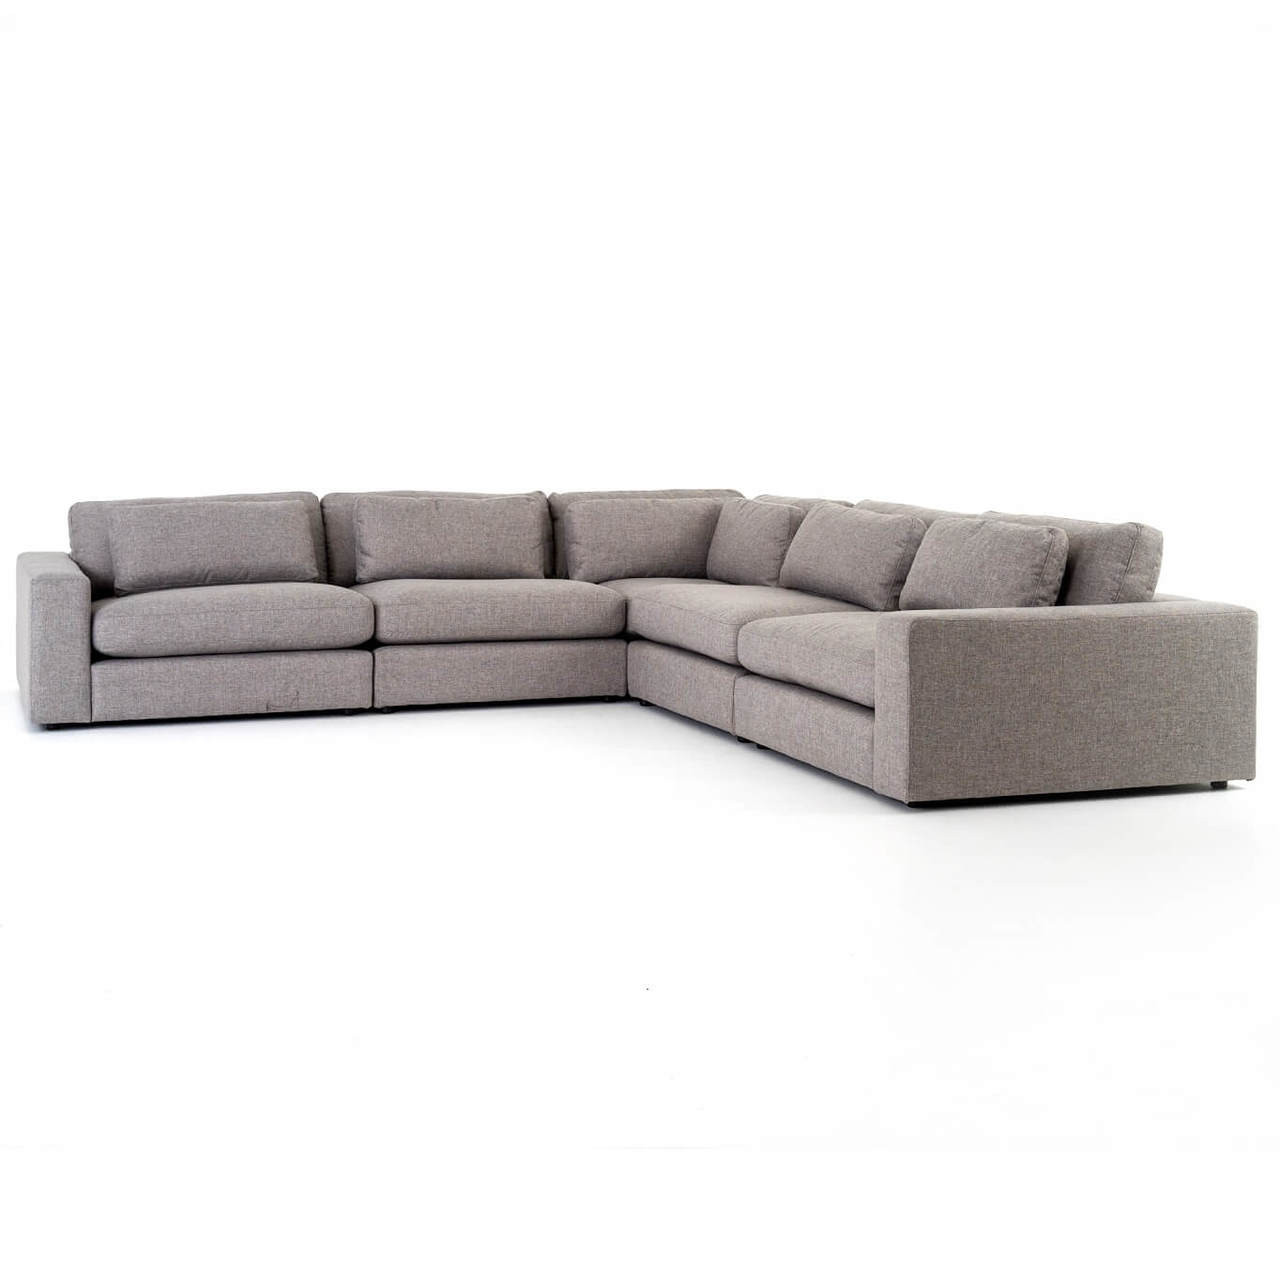 fabric arm modular sectional house no products souffle sofa corner unit souffl thatch loaf copy